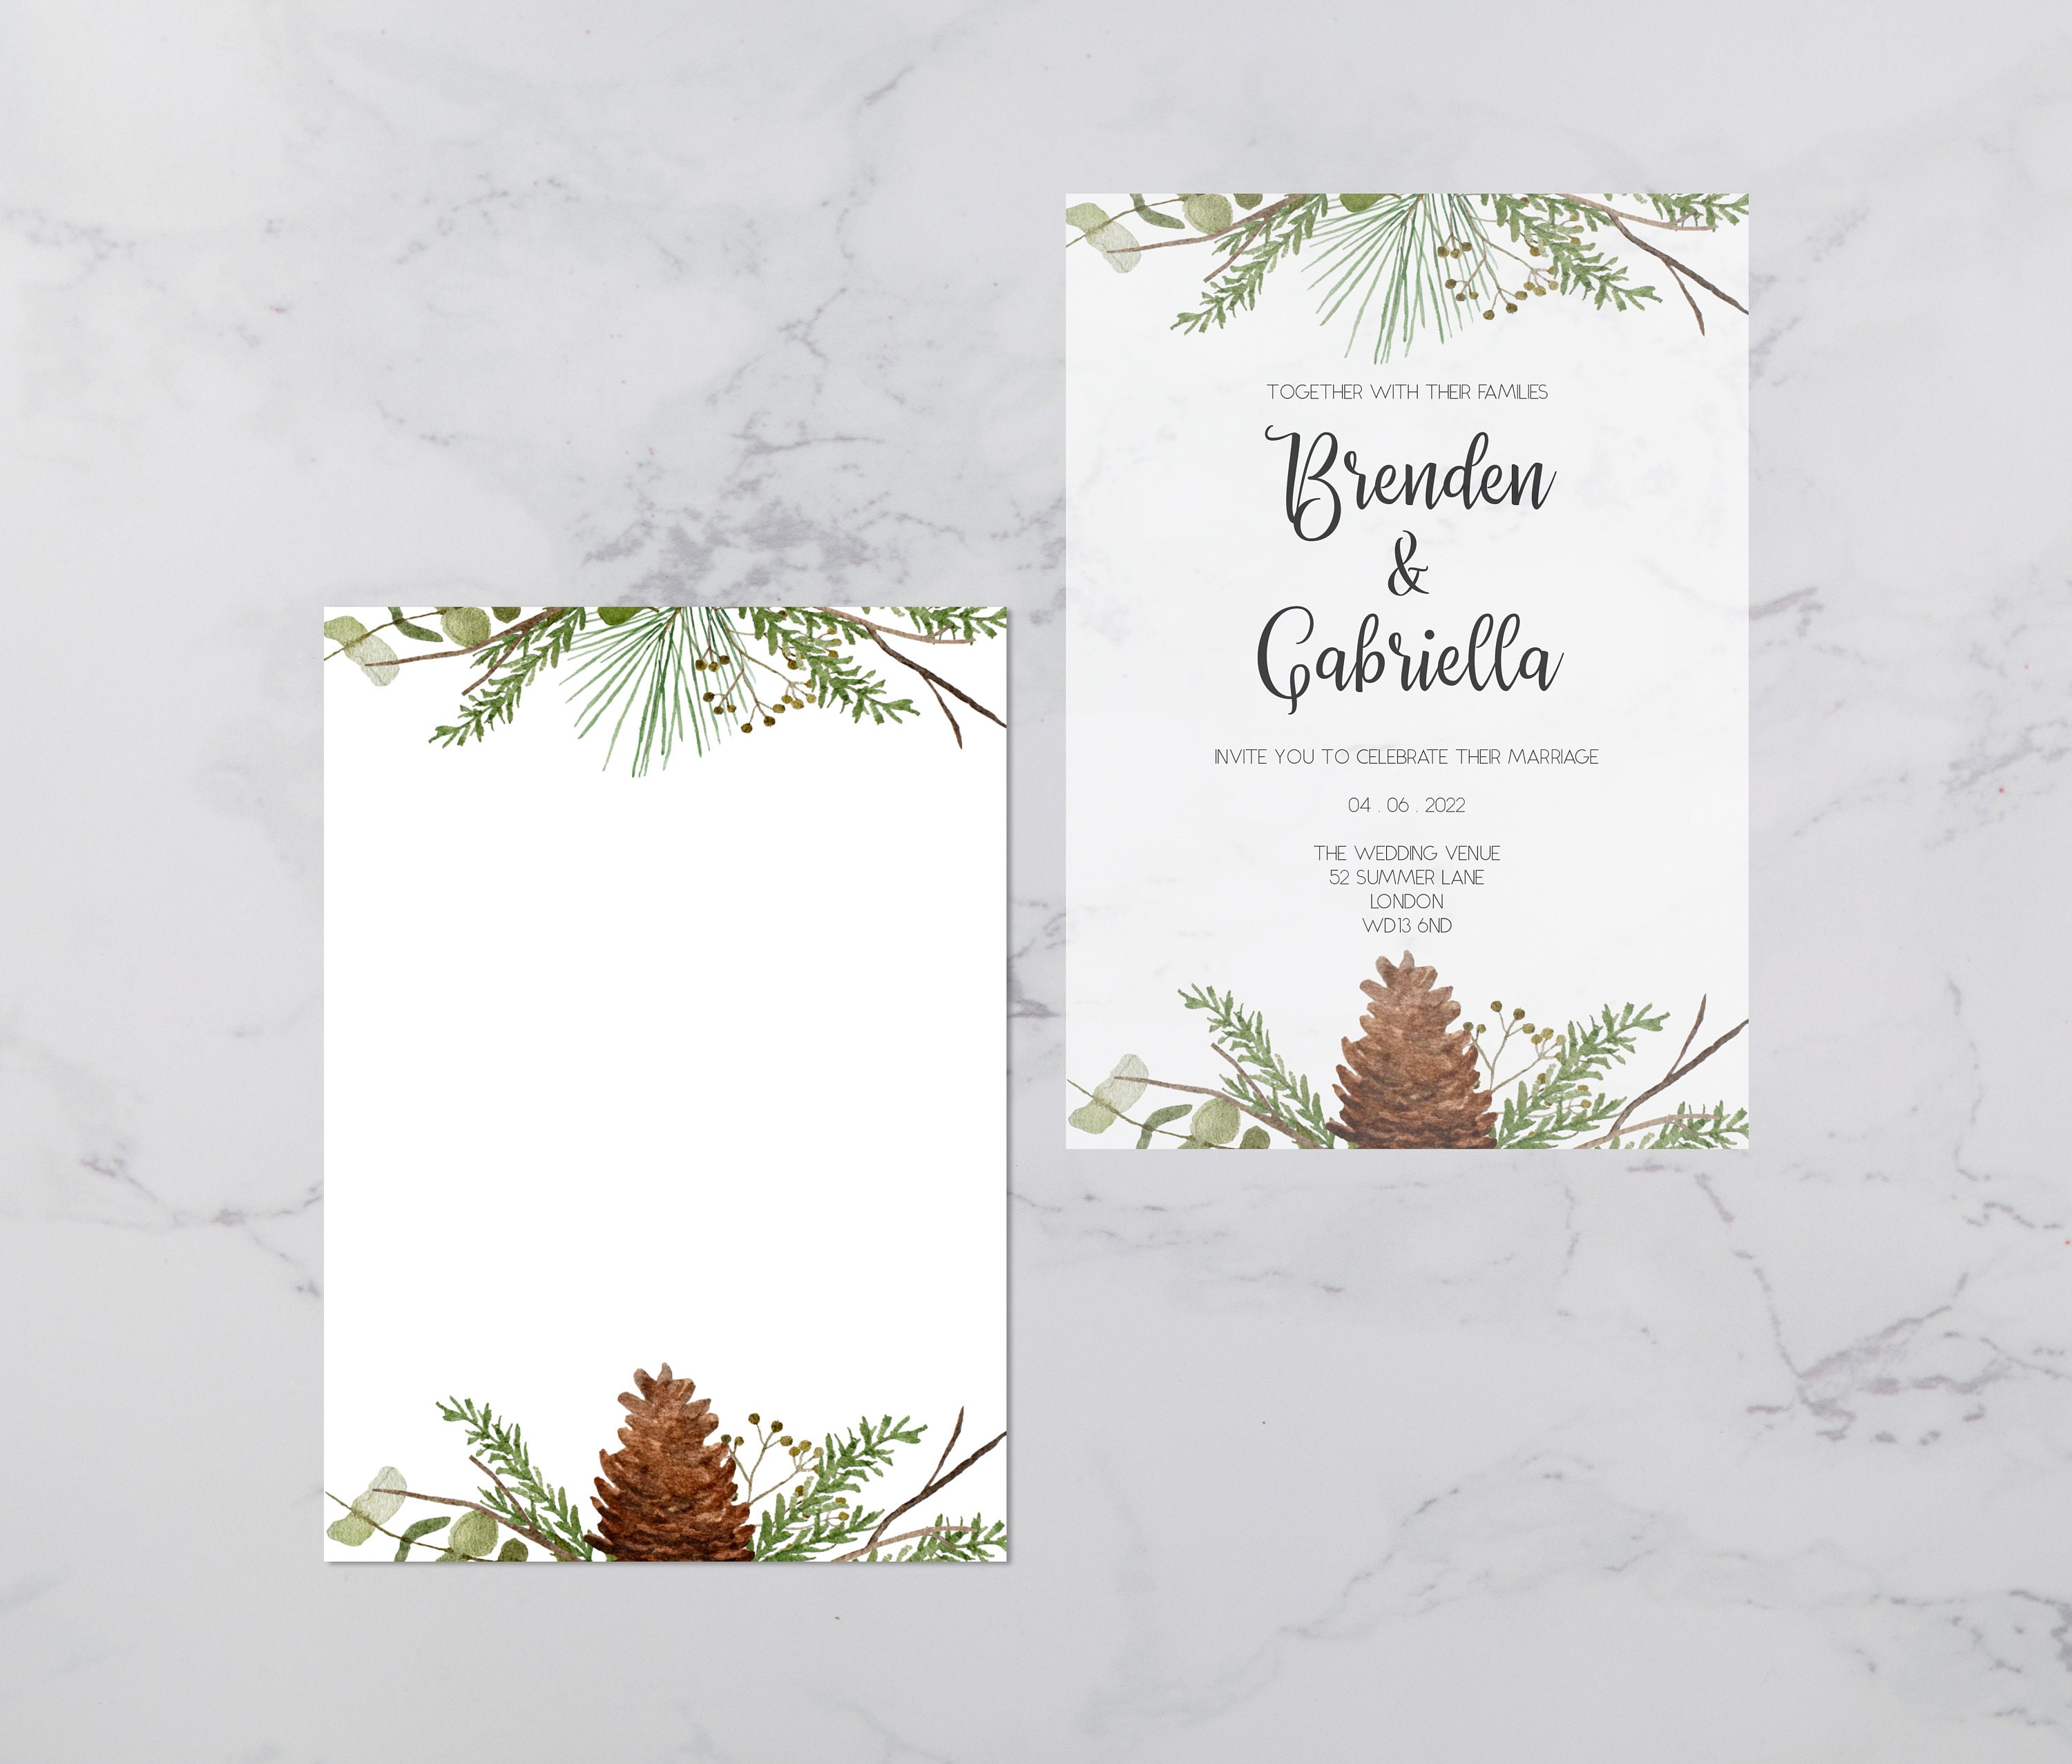 Flat lay photograph showing a white wedding invitation and the vellum overlay sheet separately.